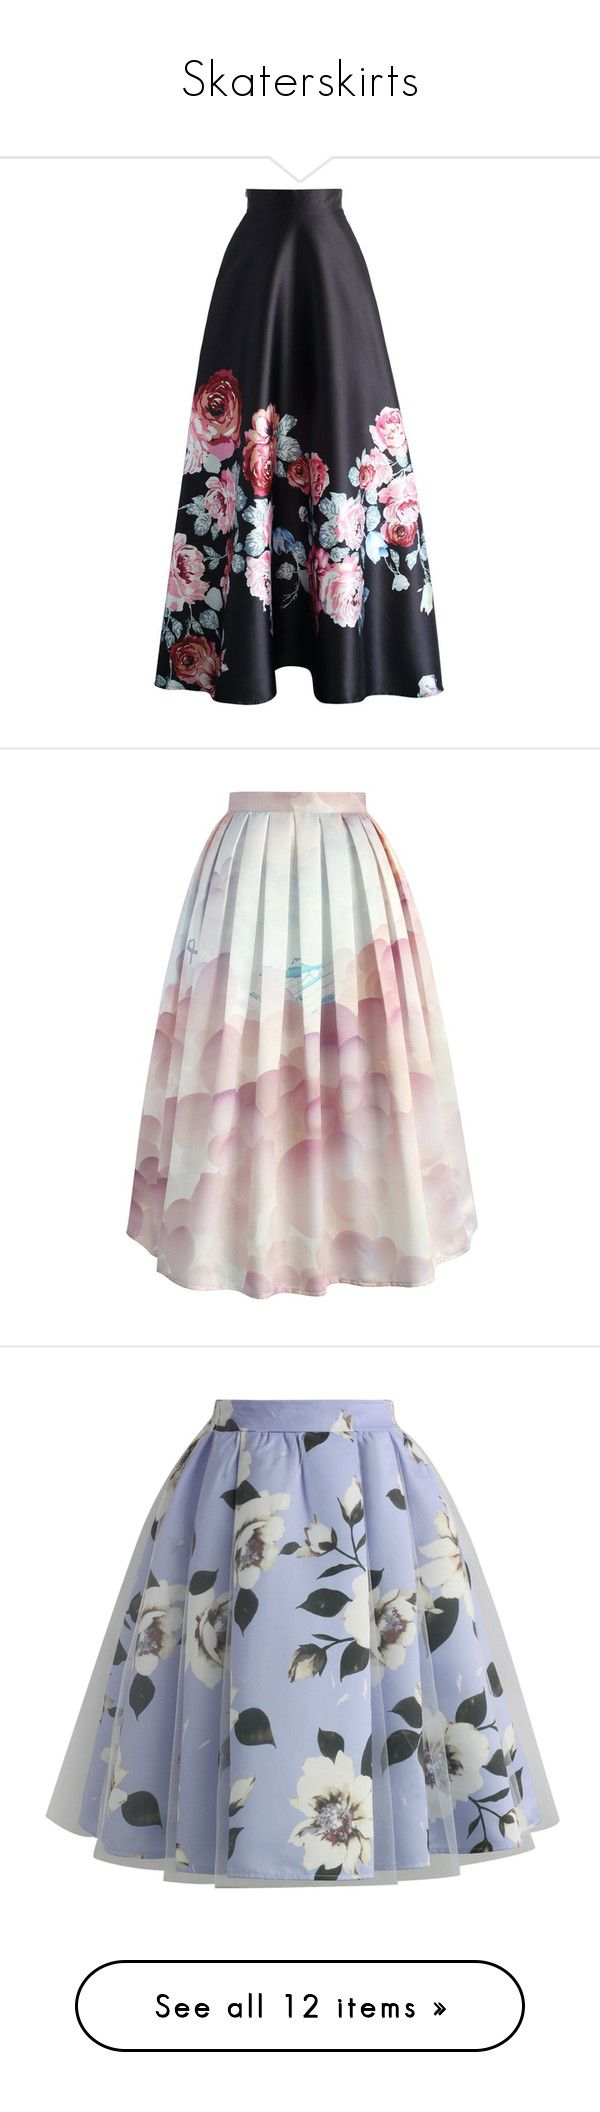 """""""Skaterskirts"""" by craneberries on Polyvore featuring skirts, bottoms, long skirts, black, maxi skirt, long maxi skirts, floral print maxi skirt, floral maxi skirt, floor length skirt and rose print skirt"""